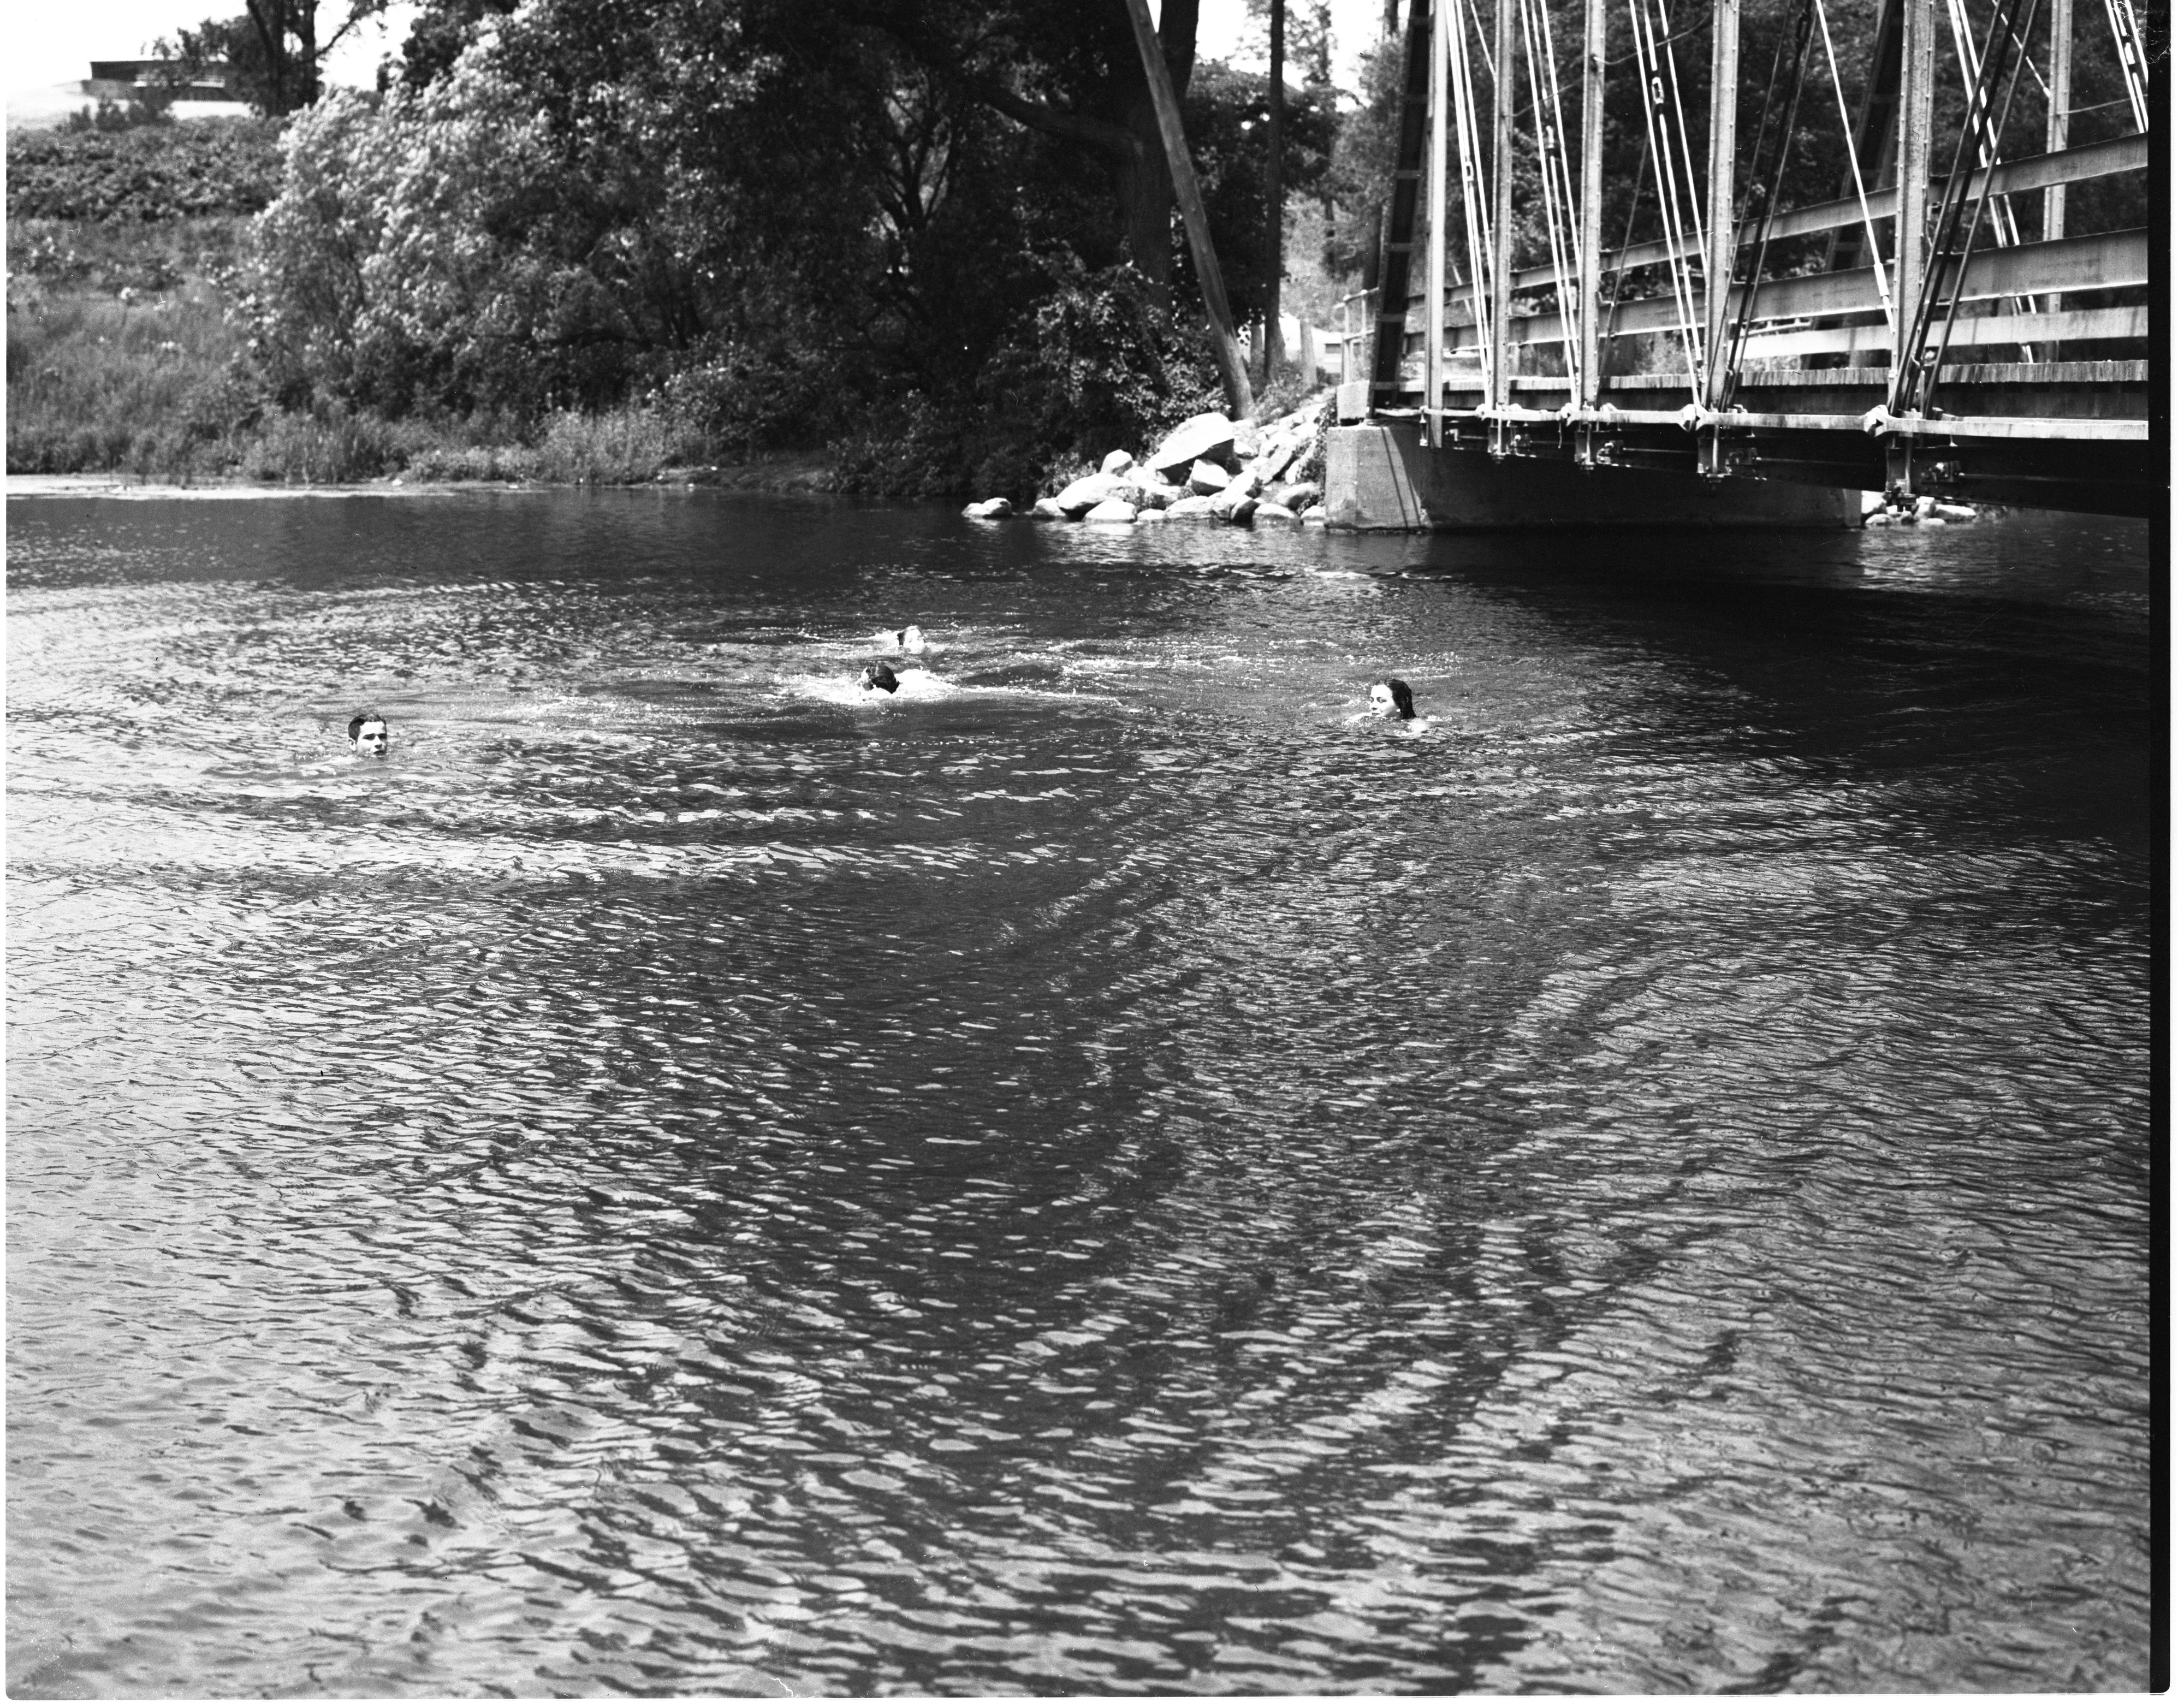 Swimming In The Huron River At The Foster Bridge, July 1955 image